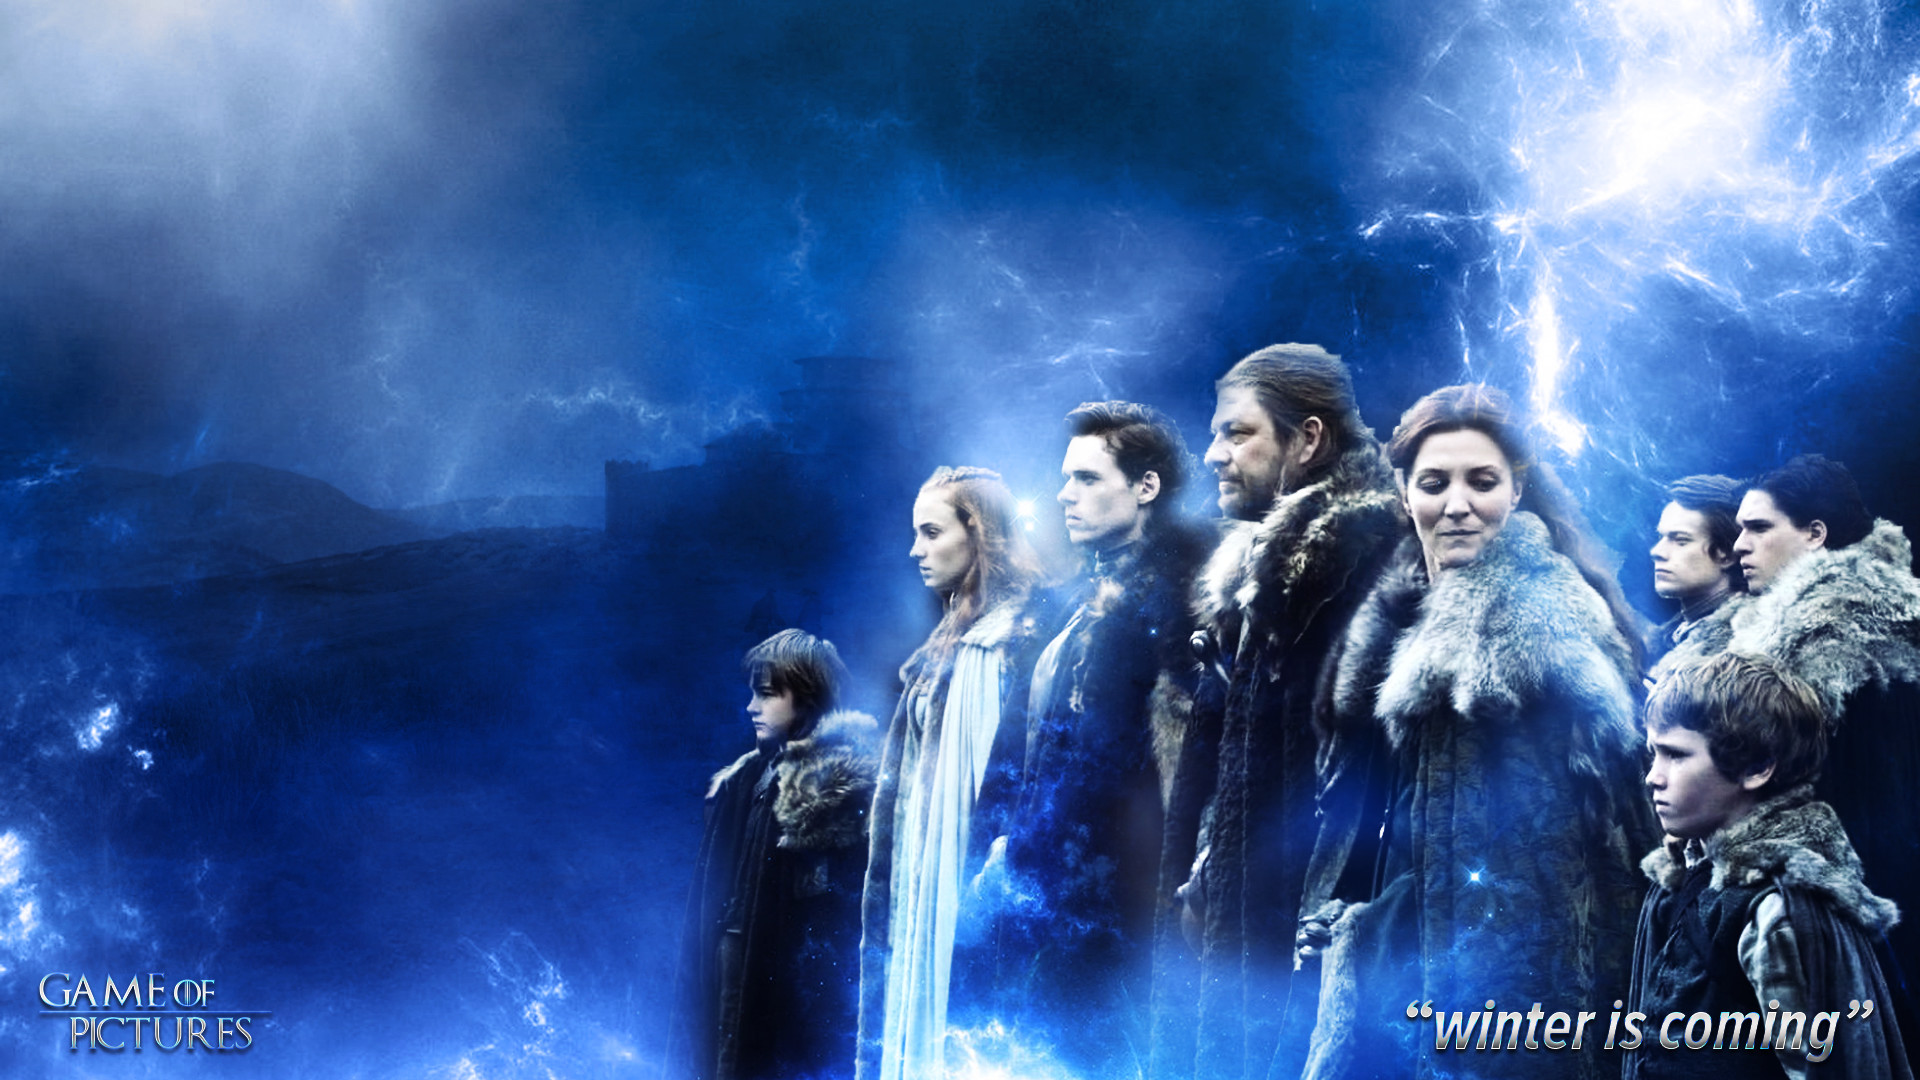 1920x1080 ... Game of Thrones House Stark Wallpaper (Season 1) by goodstart376